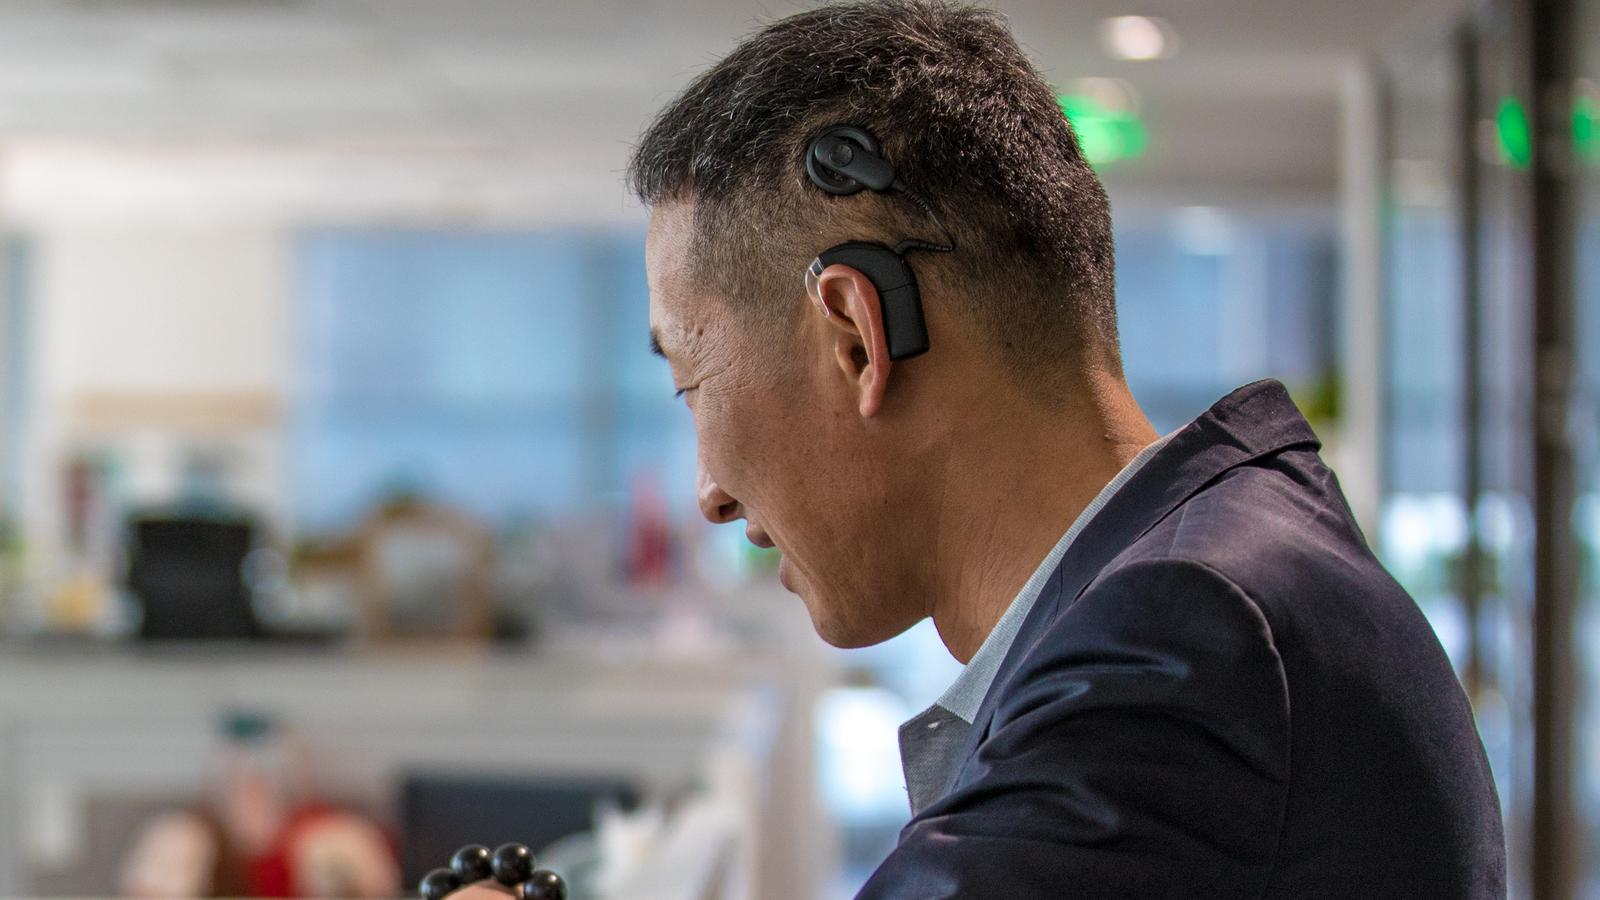 Kenneth laughs with coworkers as he wears his cochlear implants